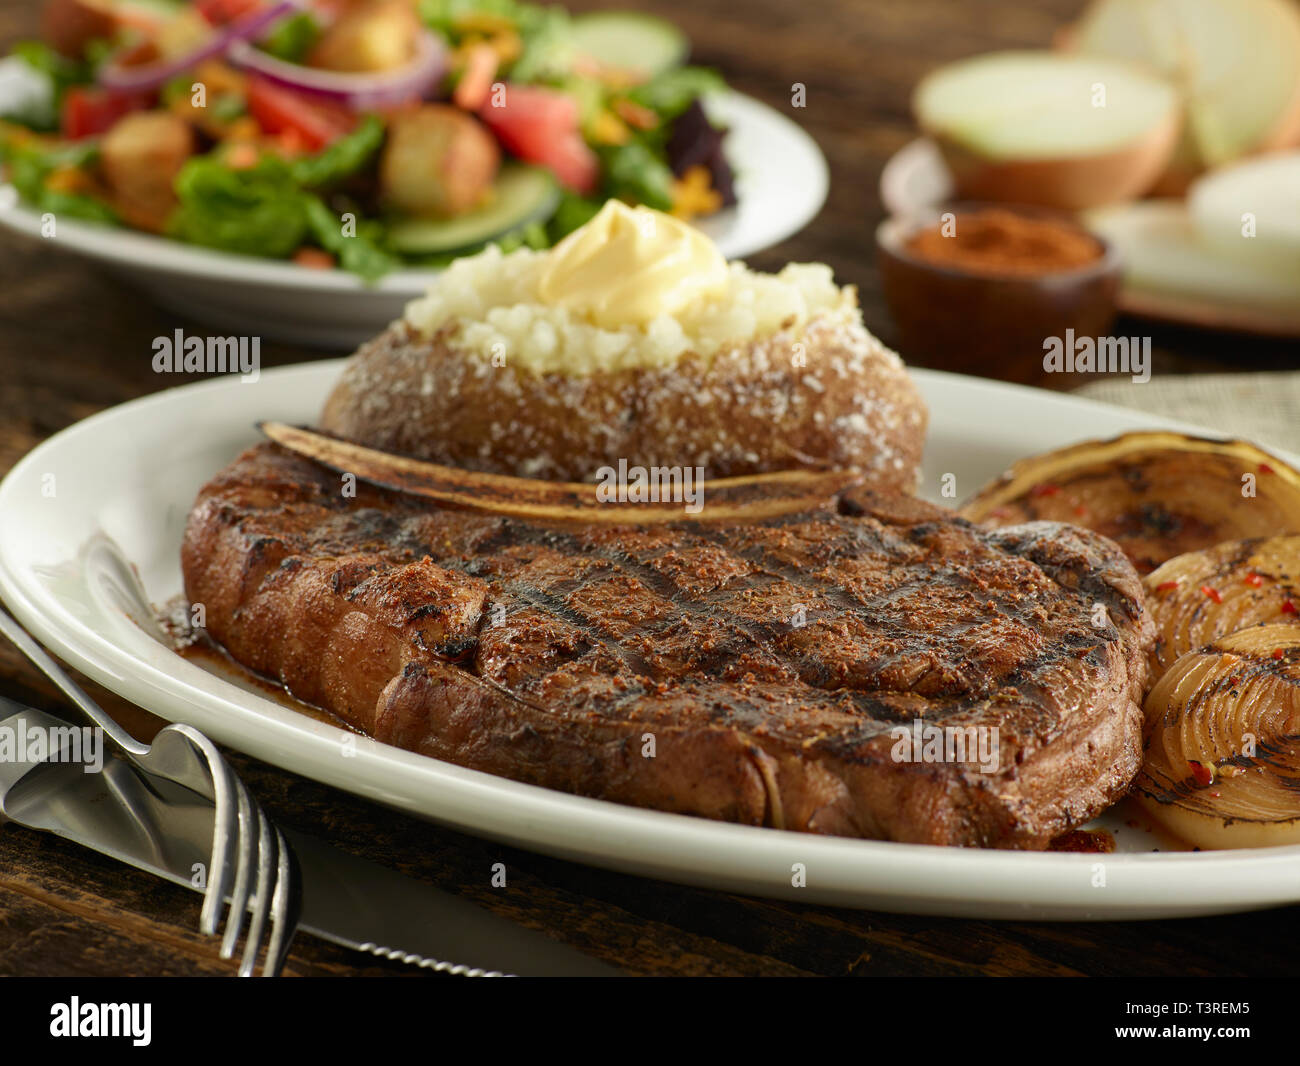 Blackened Ribeye Steak with grilled onions and salad - Stock Image